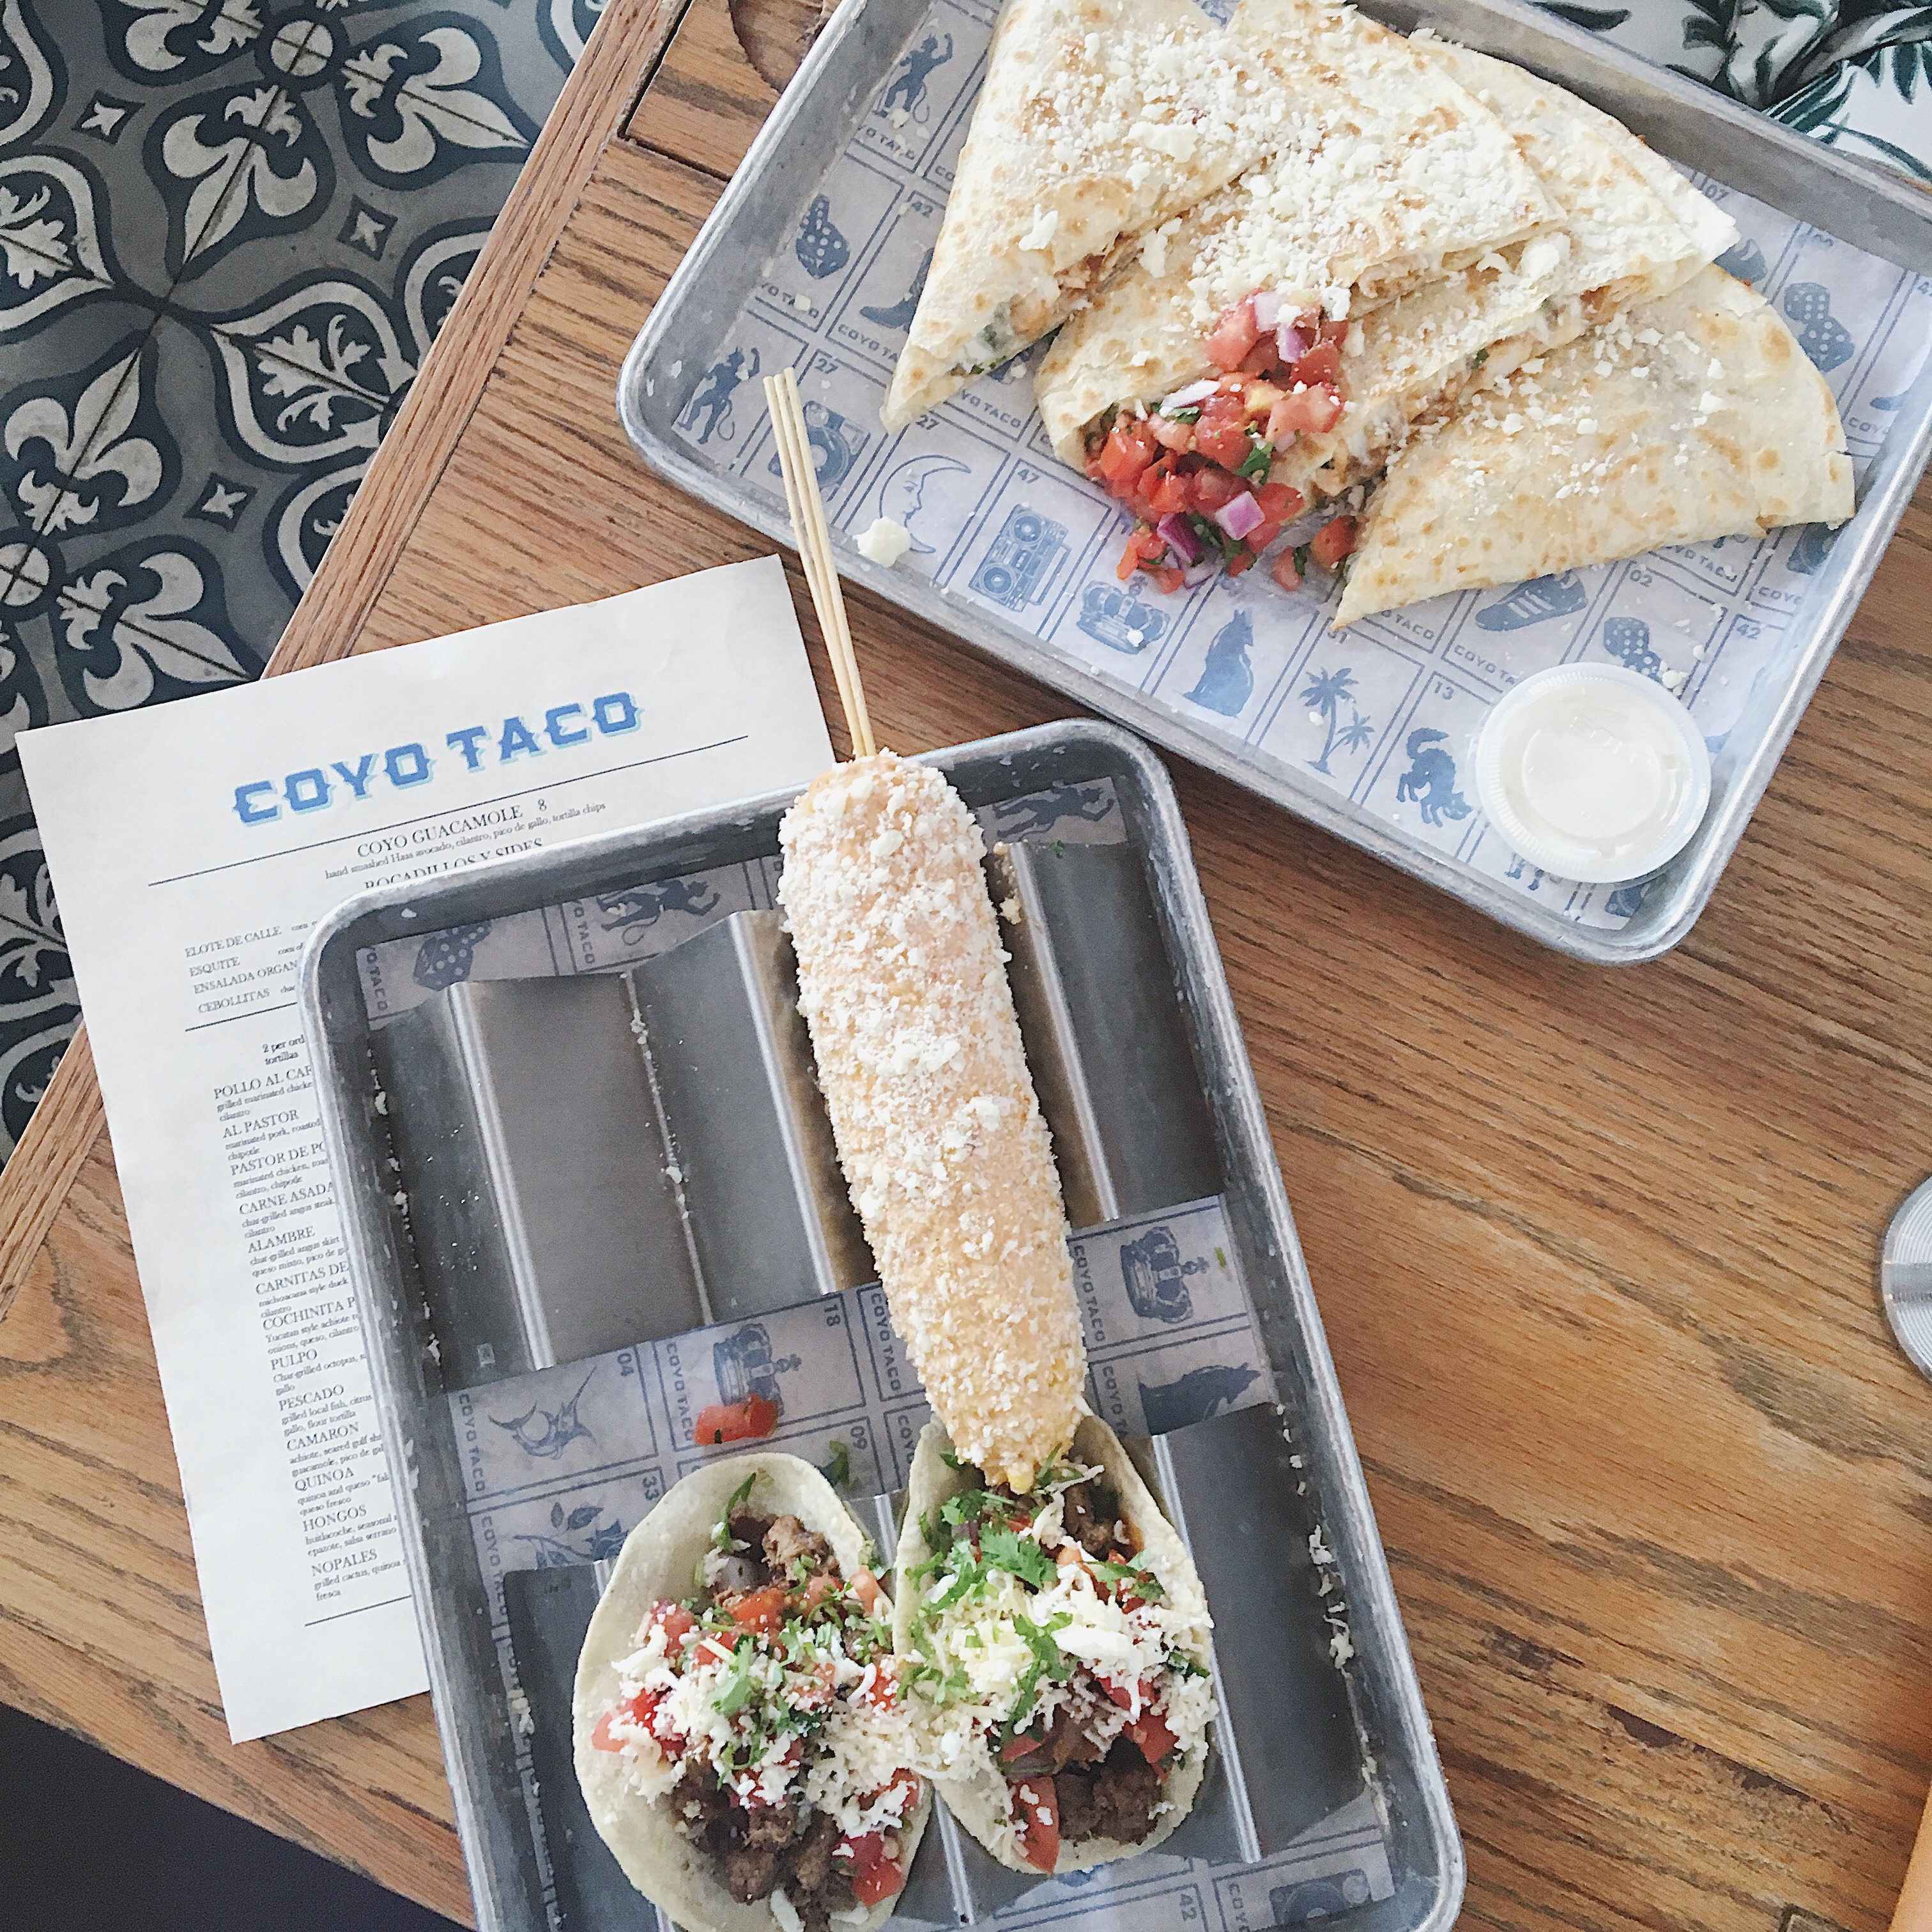 Coyo Taco Wynwood, Miami, Florida